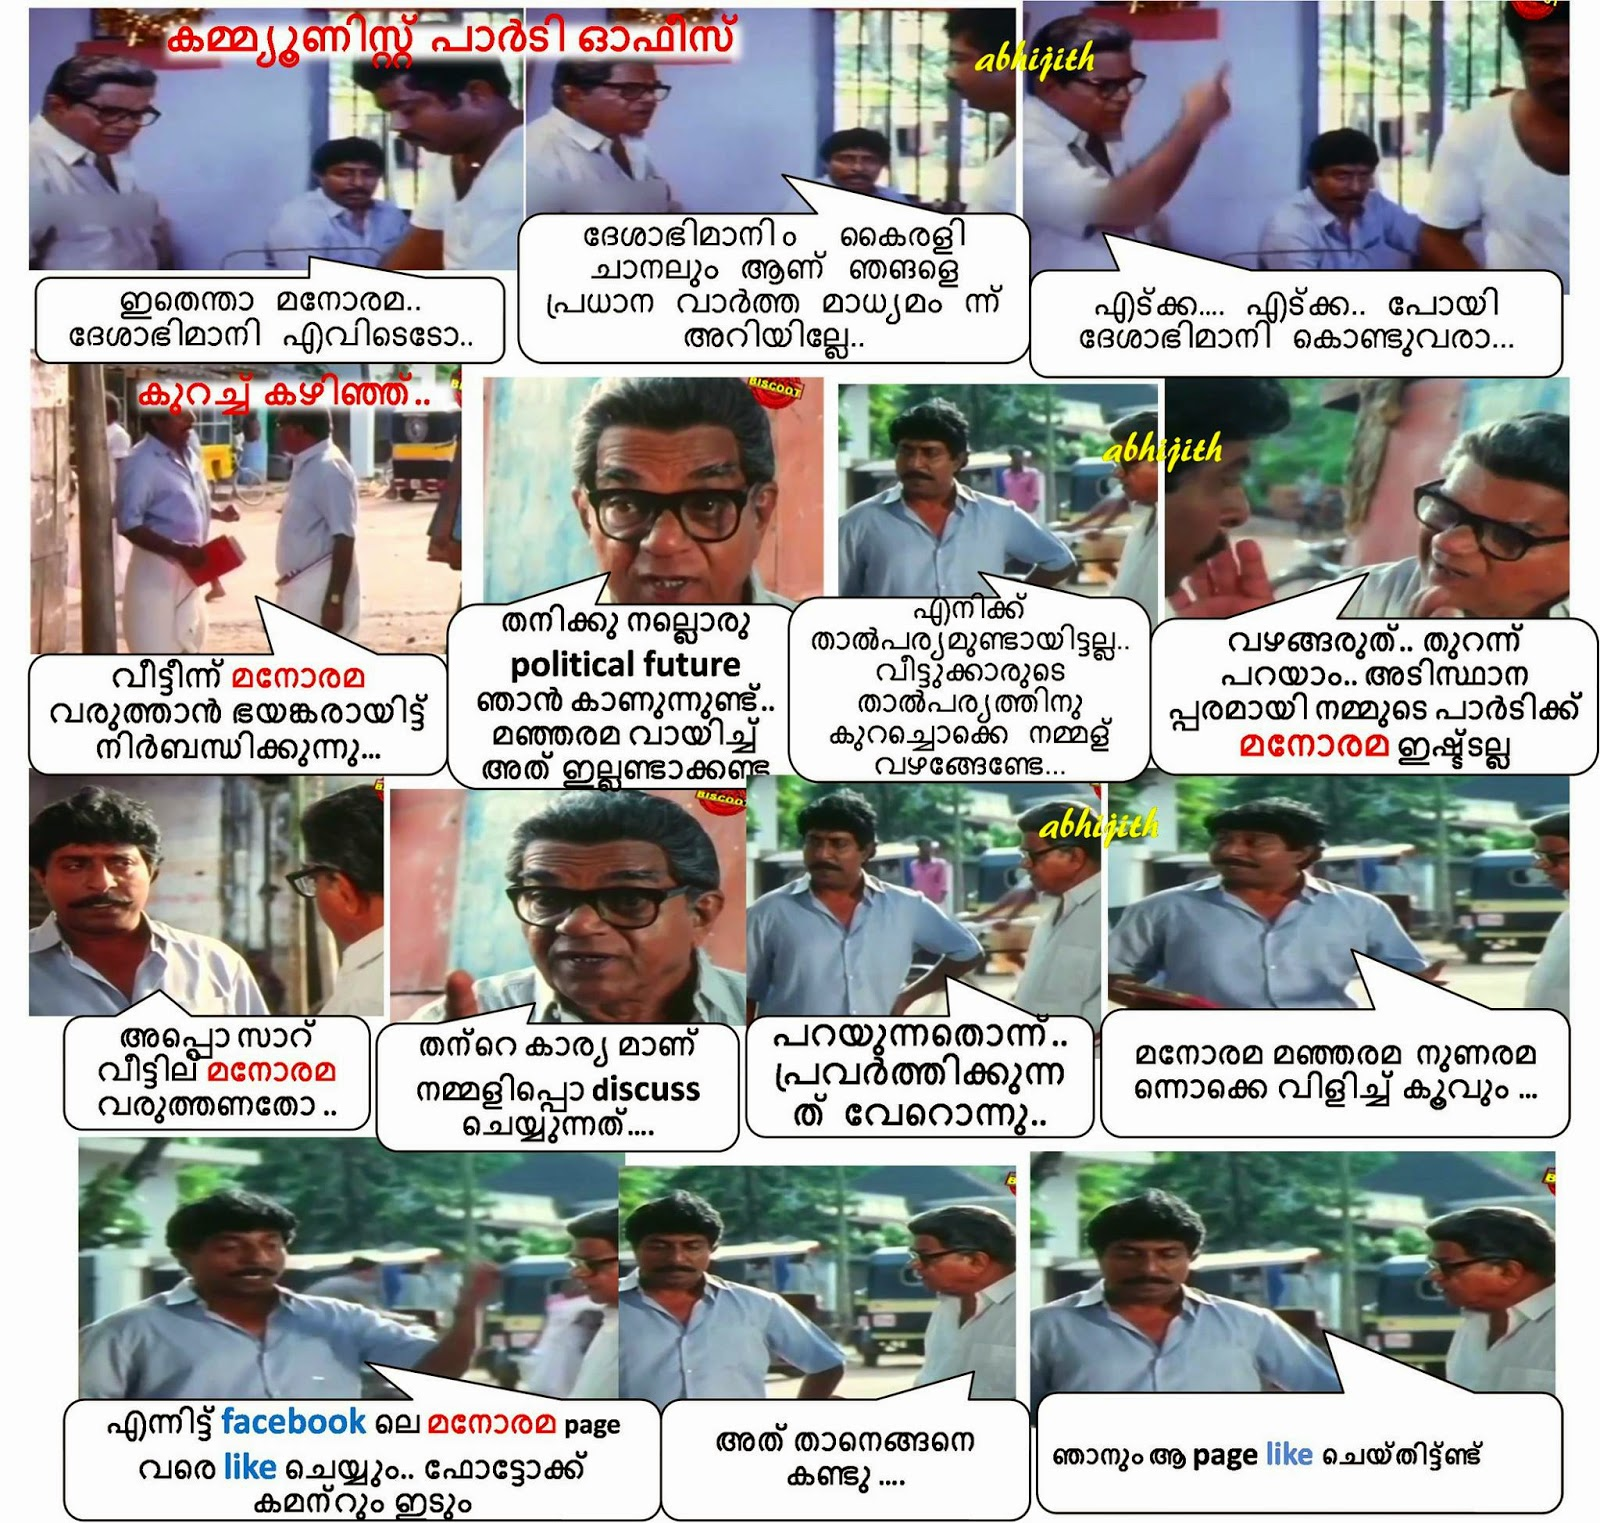 Malayalam Messages: Whatsapp Funny Forwards (Exclusive Malayalam Whatsapp Content